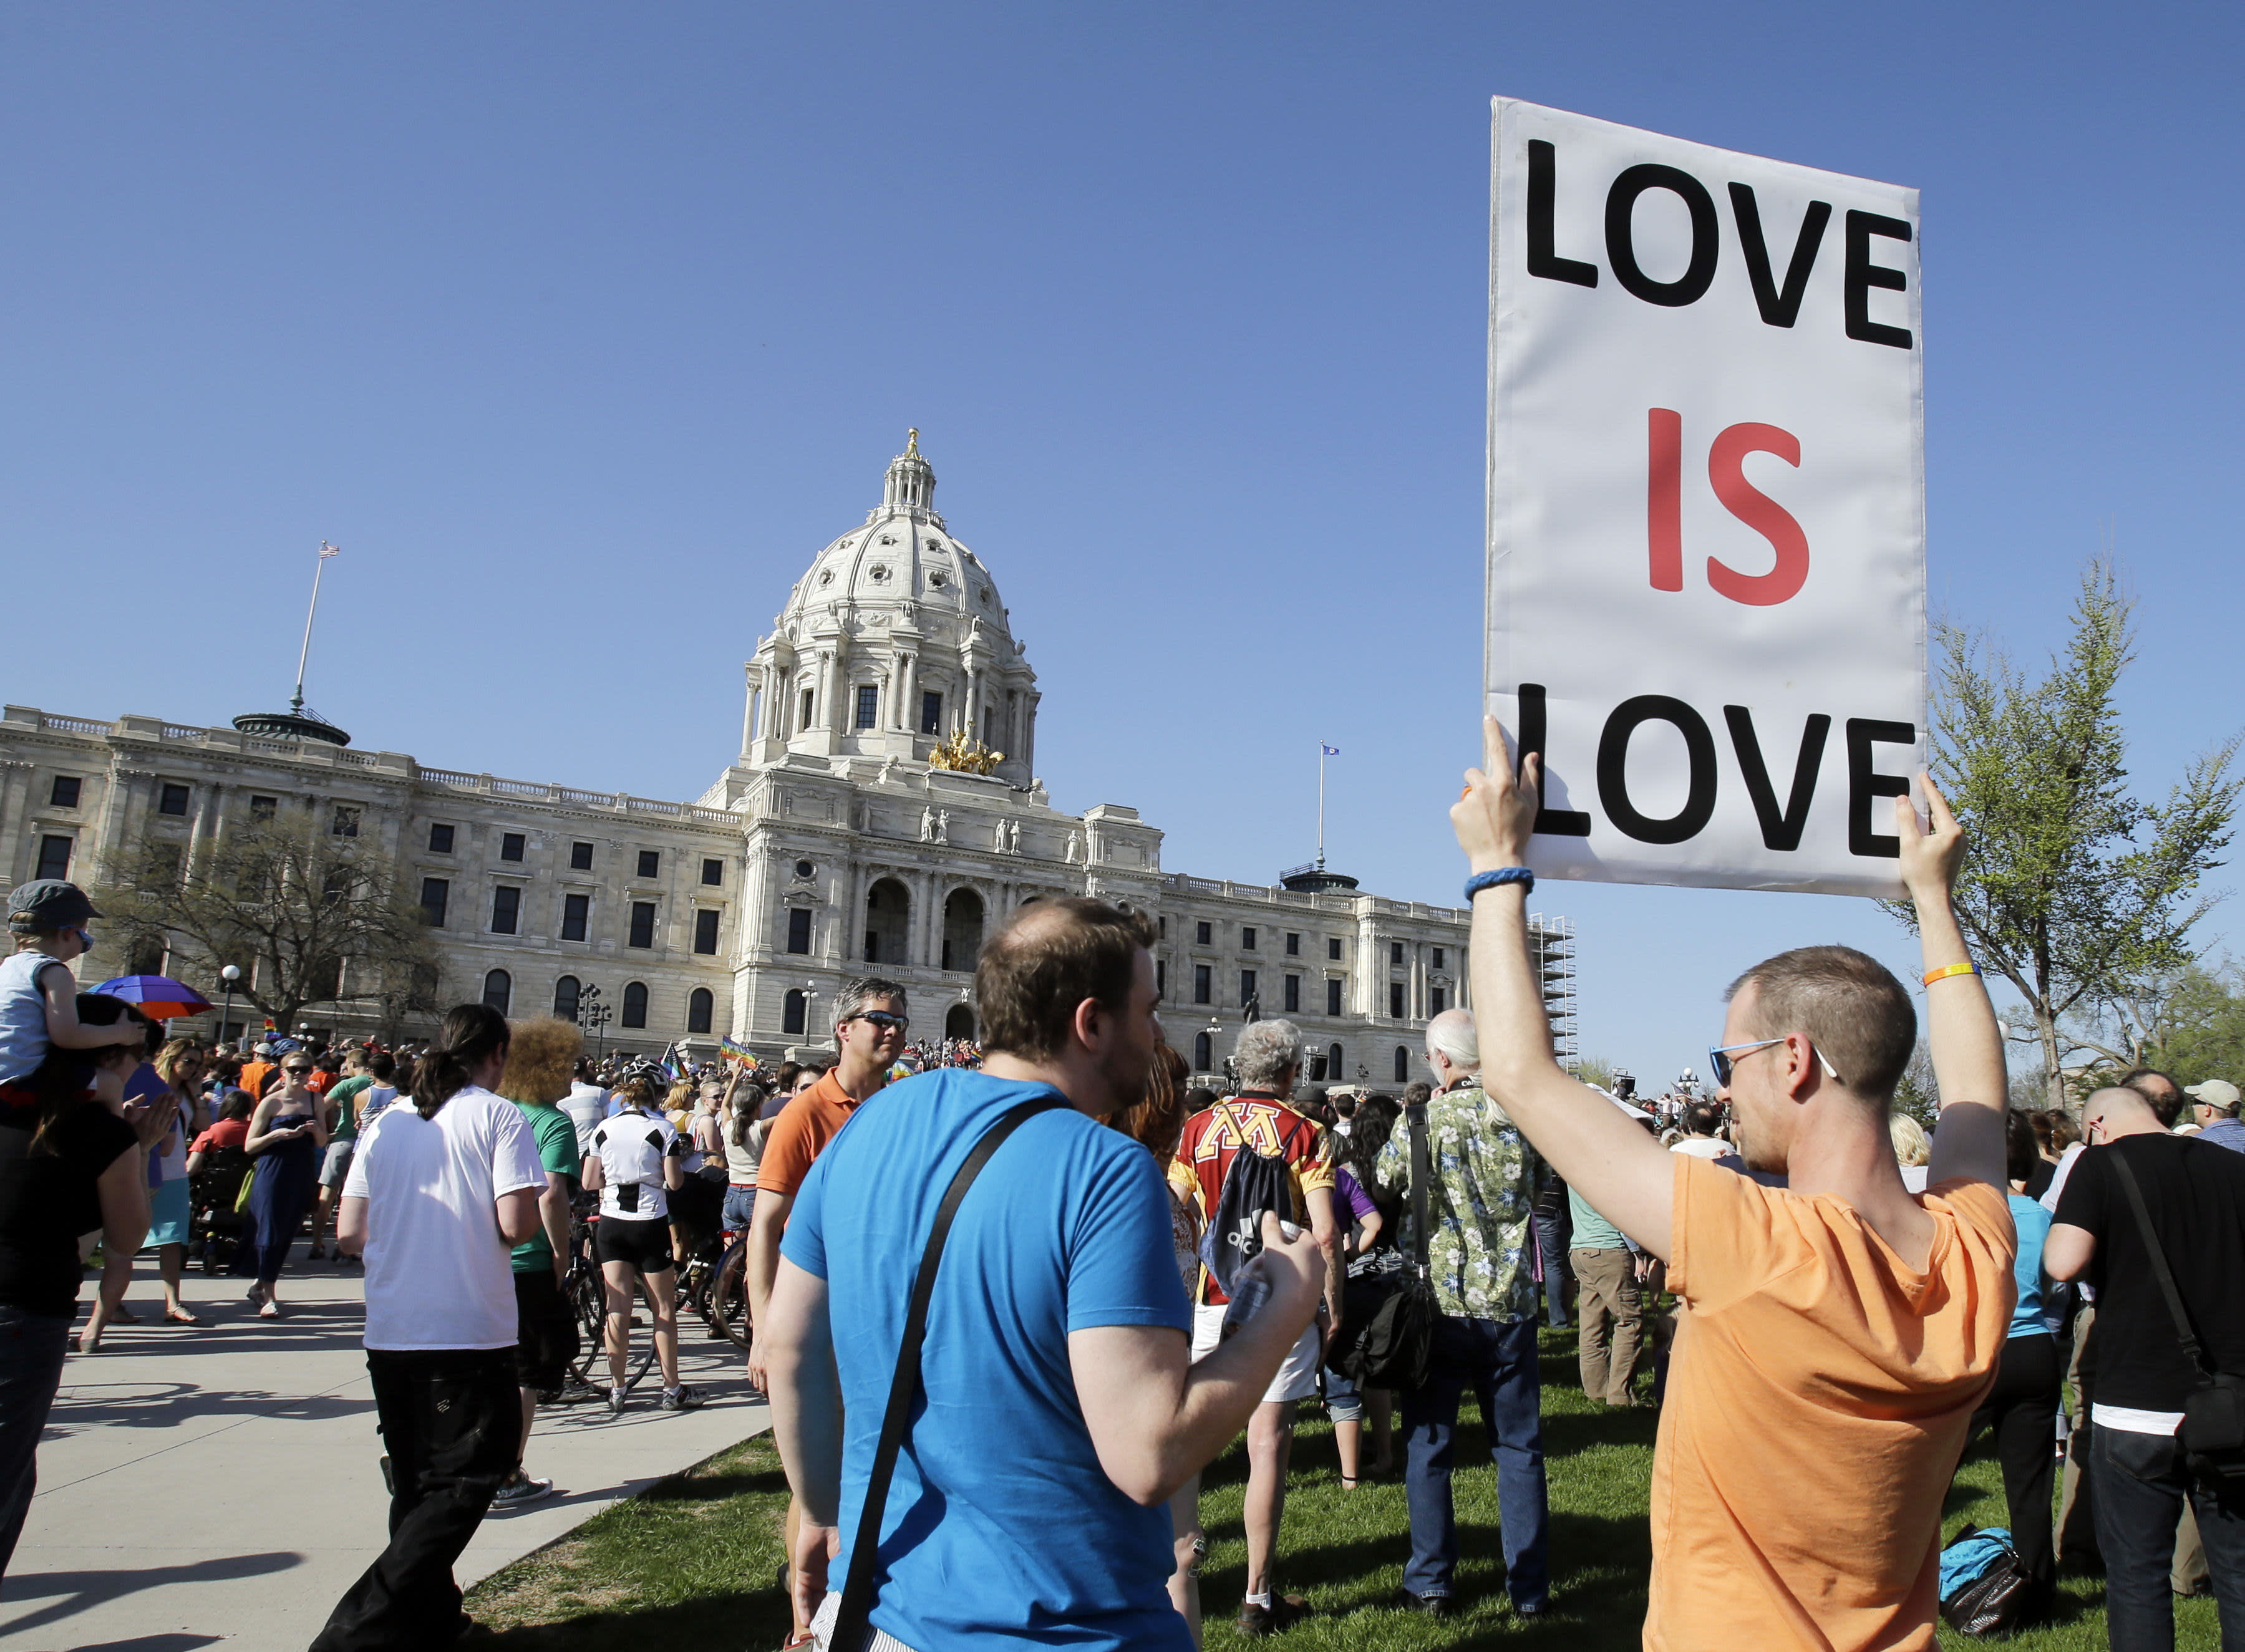 Couples wed in duluth as gay marriage becomes legal in minnesota